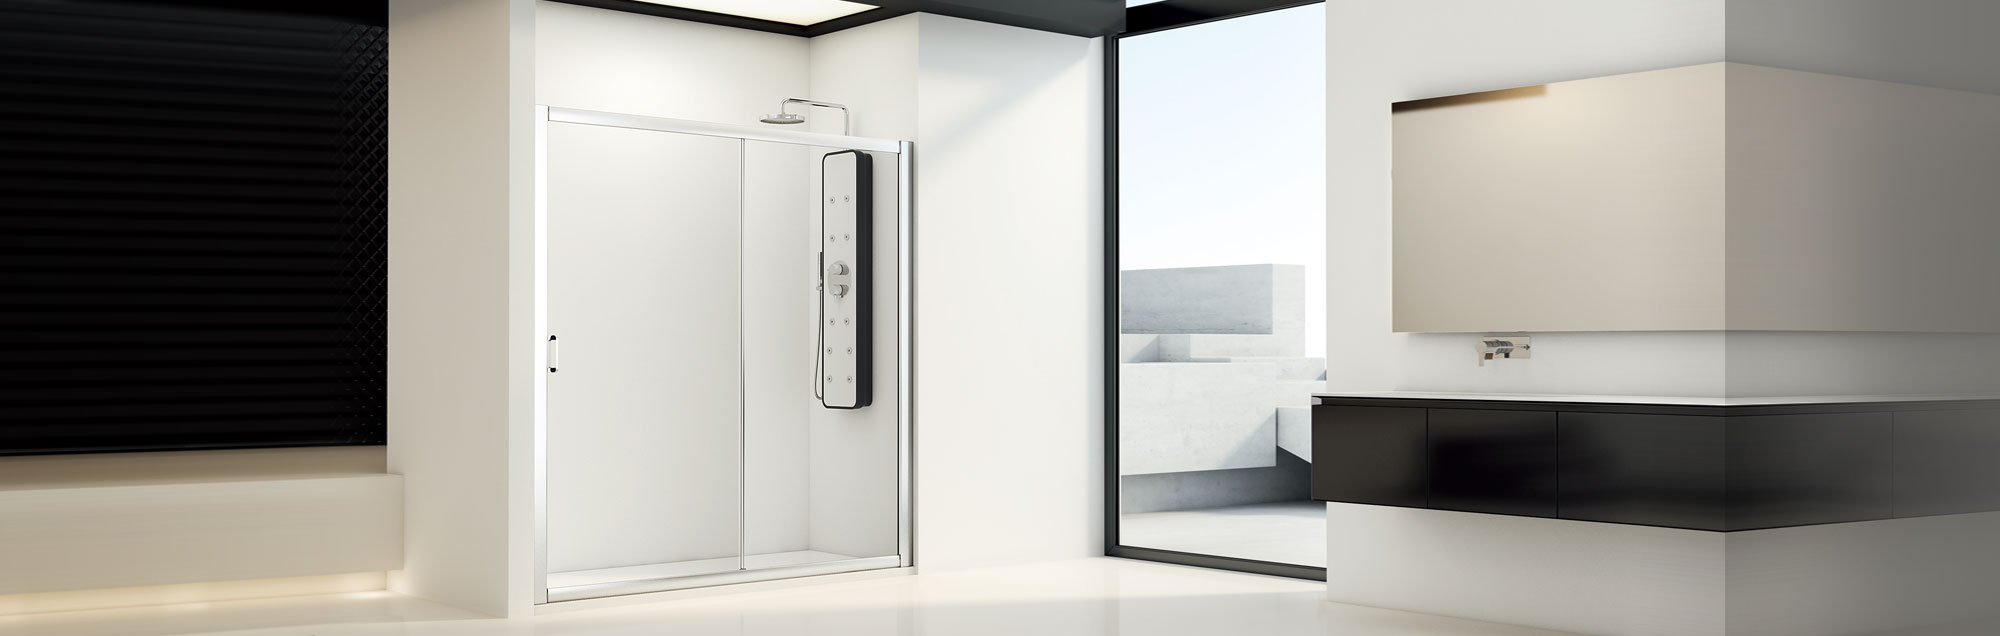 Cristaldux Collection sliding made to measure bathroom enclosures